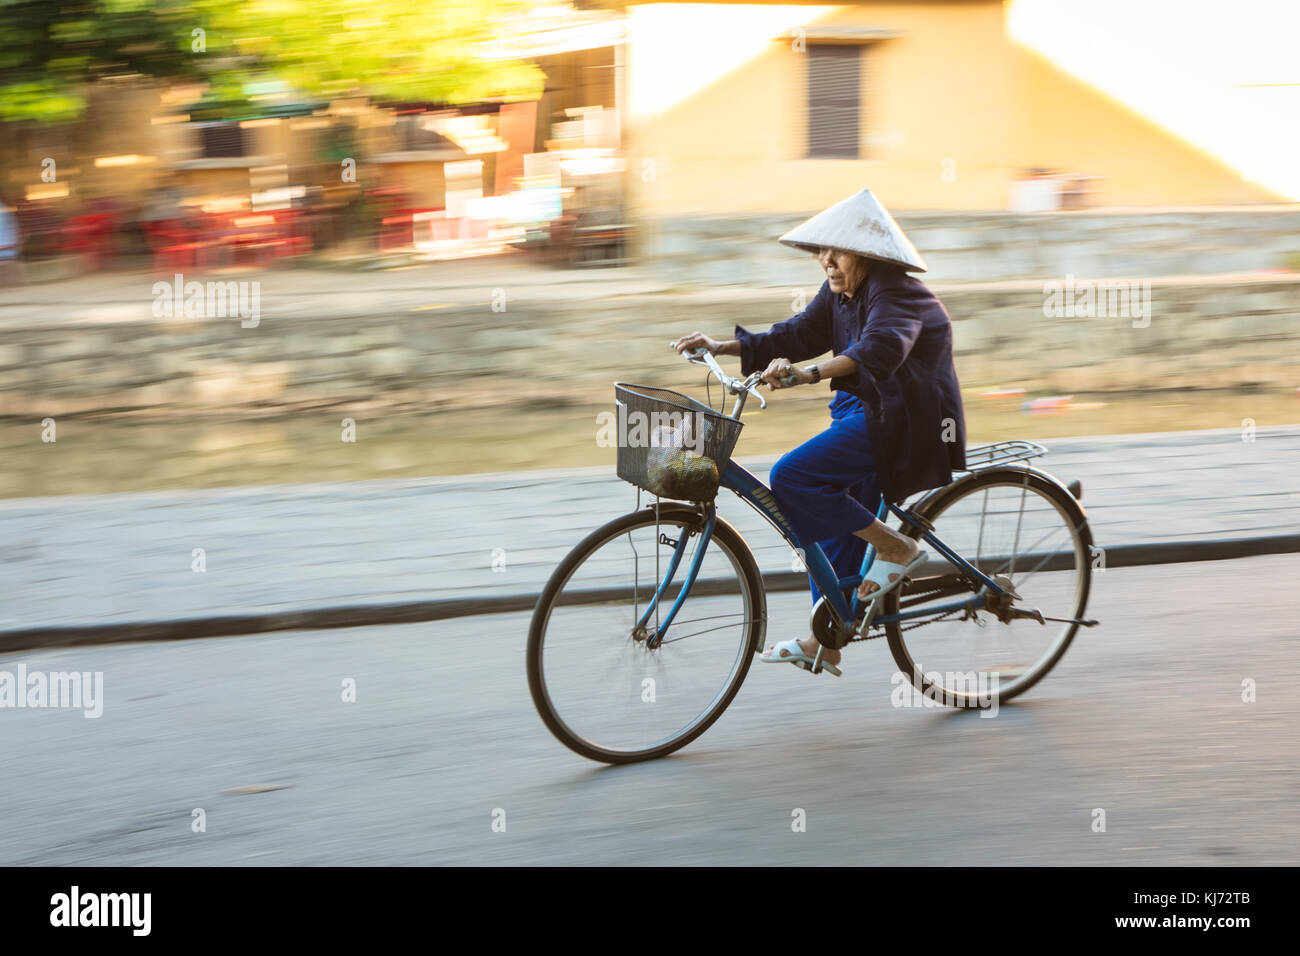 Elderly Asian commuter in a conical hat cycling in Hoi An city streets - Stock Image